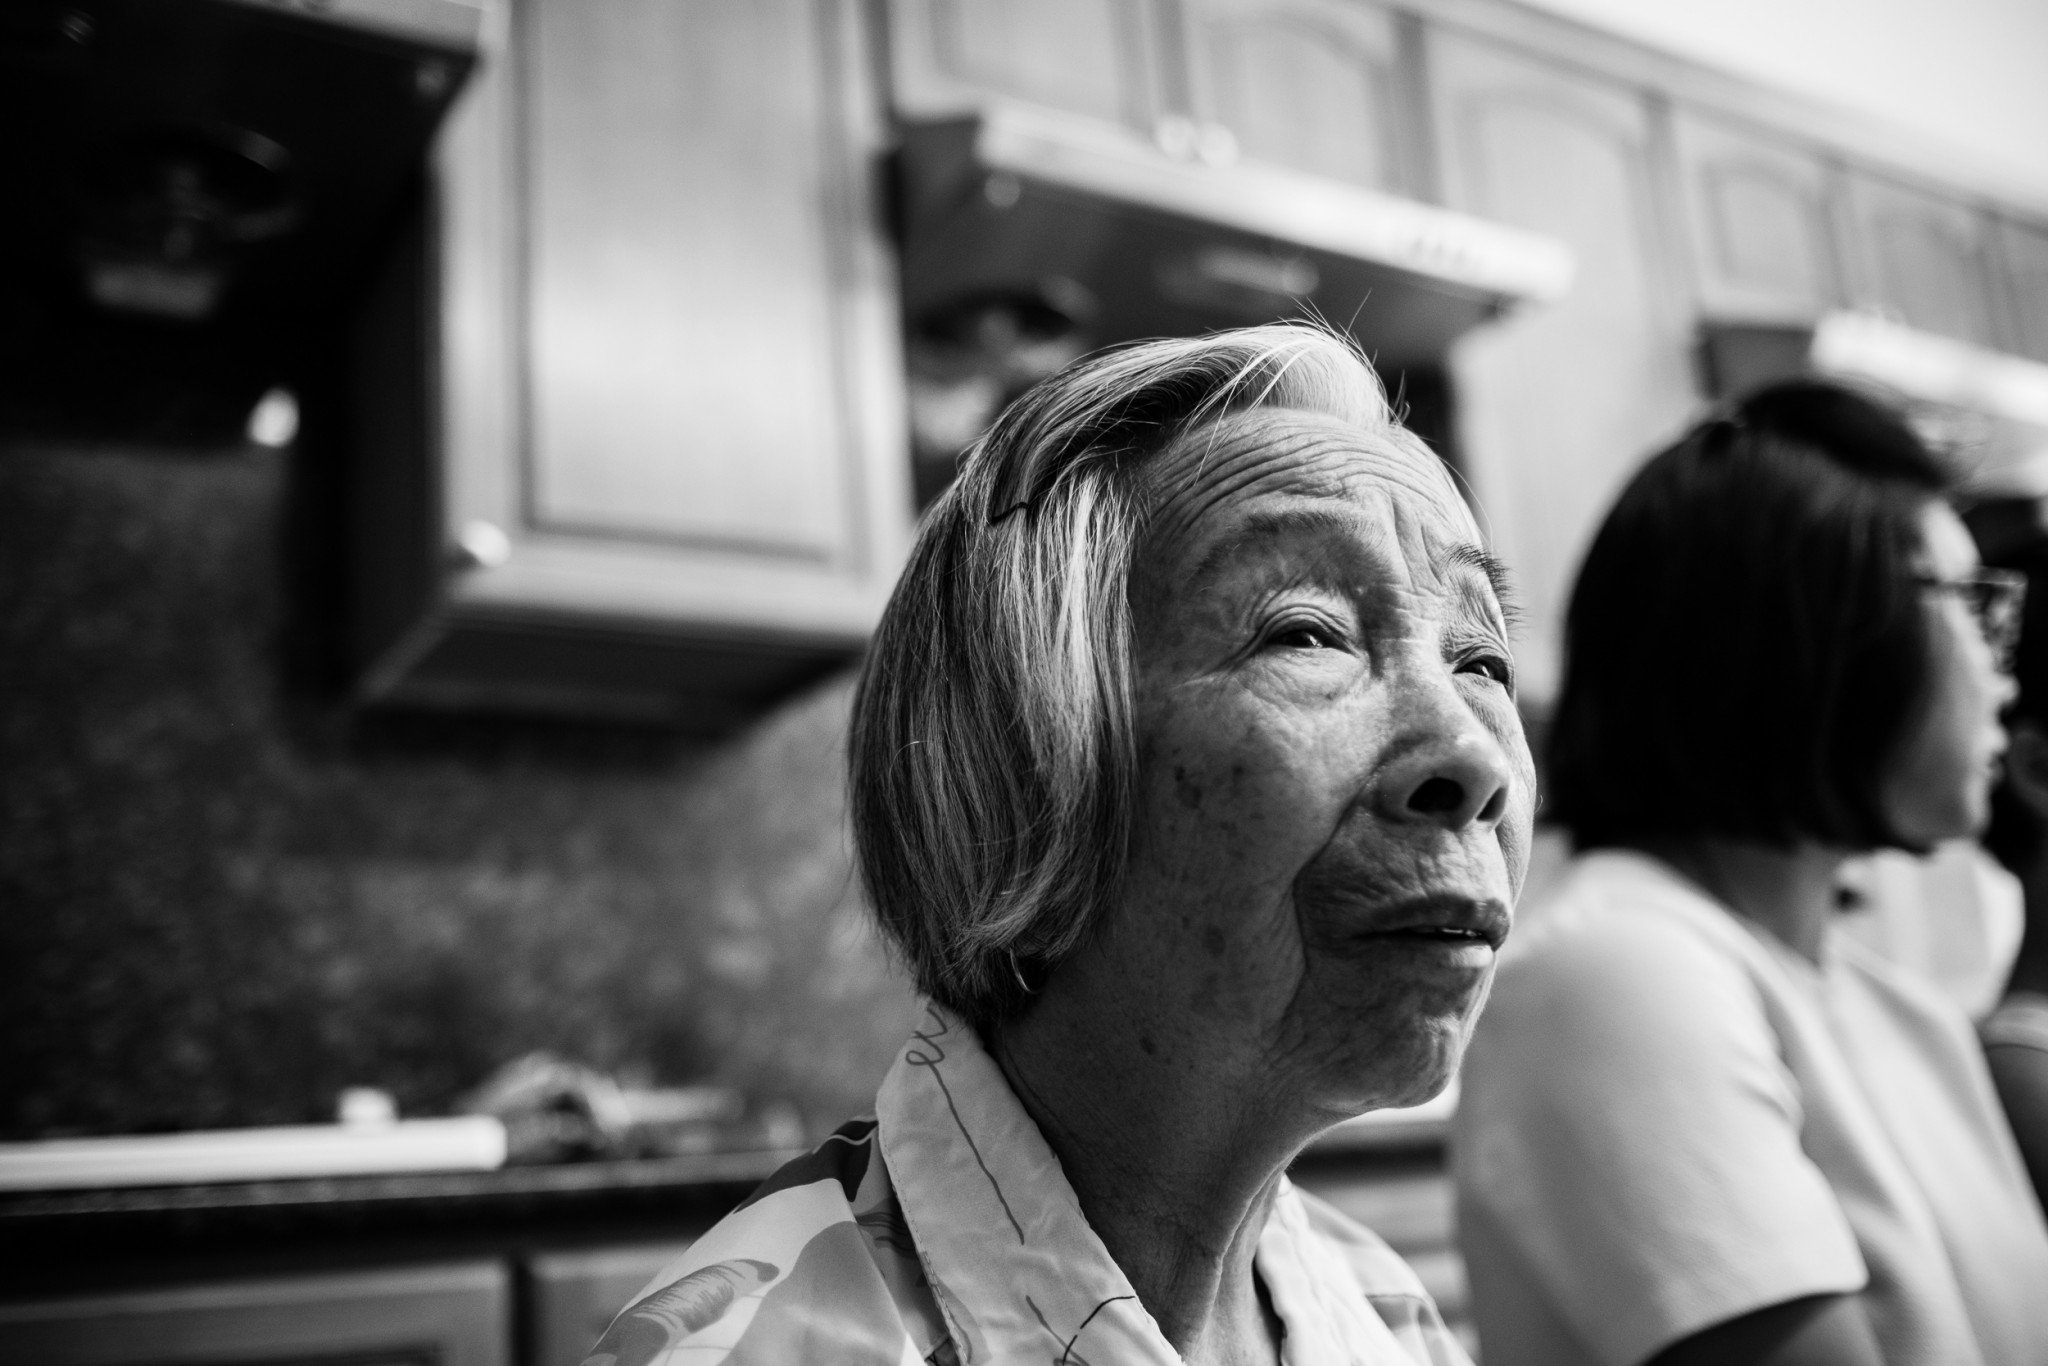 All of the senior tenants, several of them in their mid-to-late 80s, like Mrs. Wong, have lived in this building for 15 years or more. They are all immigrants, and speak little English. They also say they don't want to move regardless of how much money they might be offered to do so. (Photo by Bear Guerra)